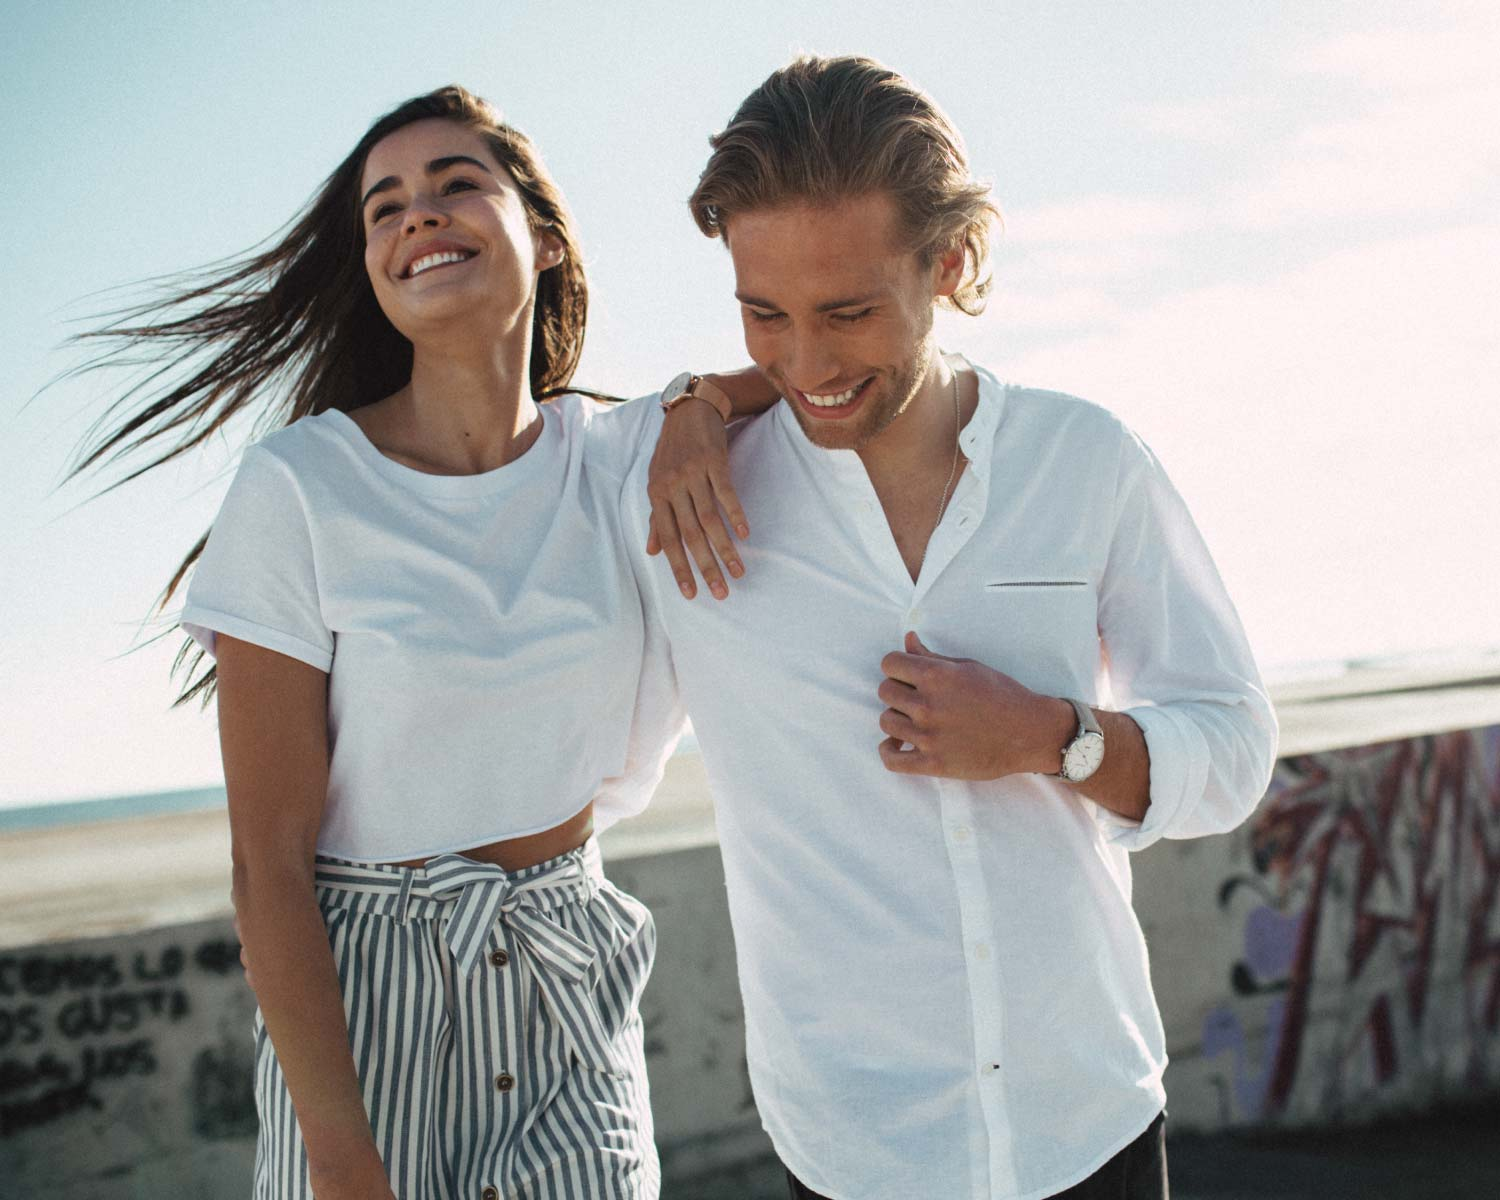 Couple with summer clothes wearing Gallivant Aquafino watches and having fun together